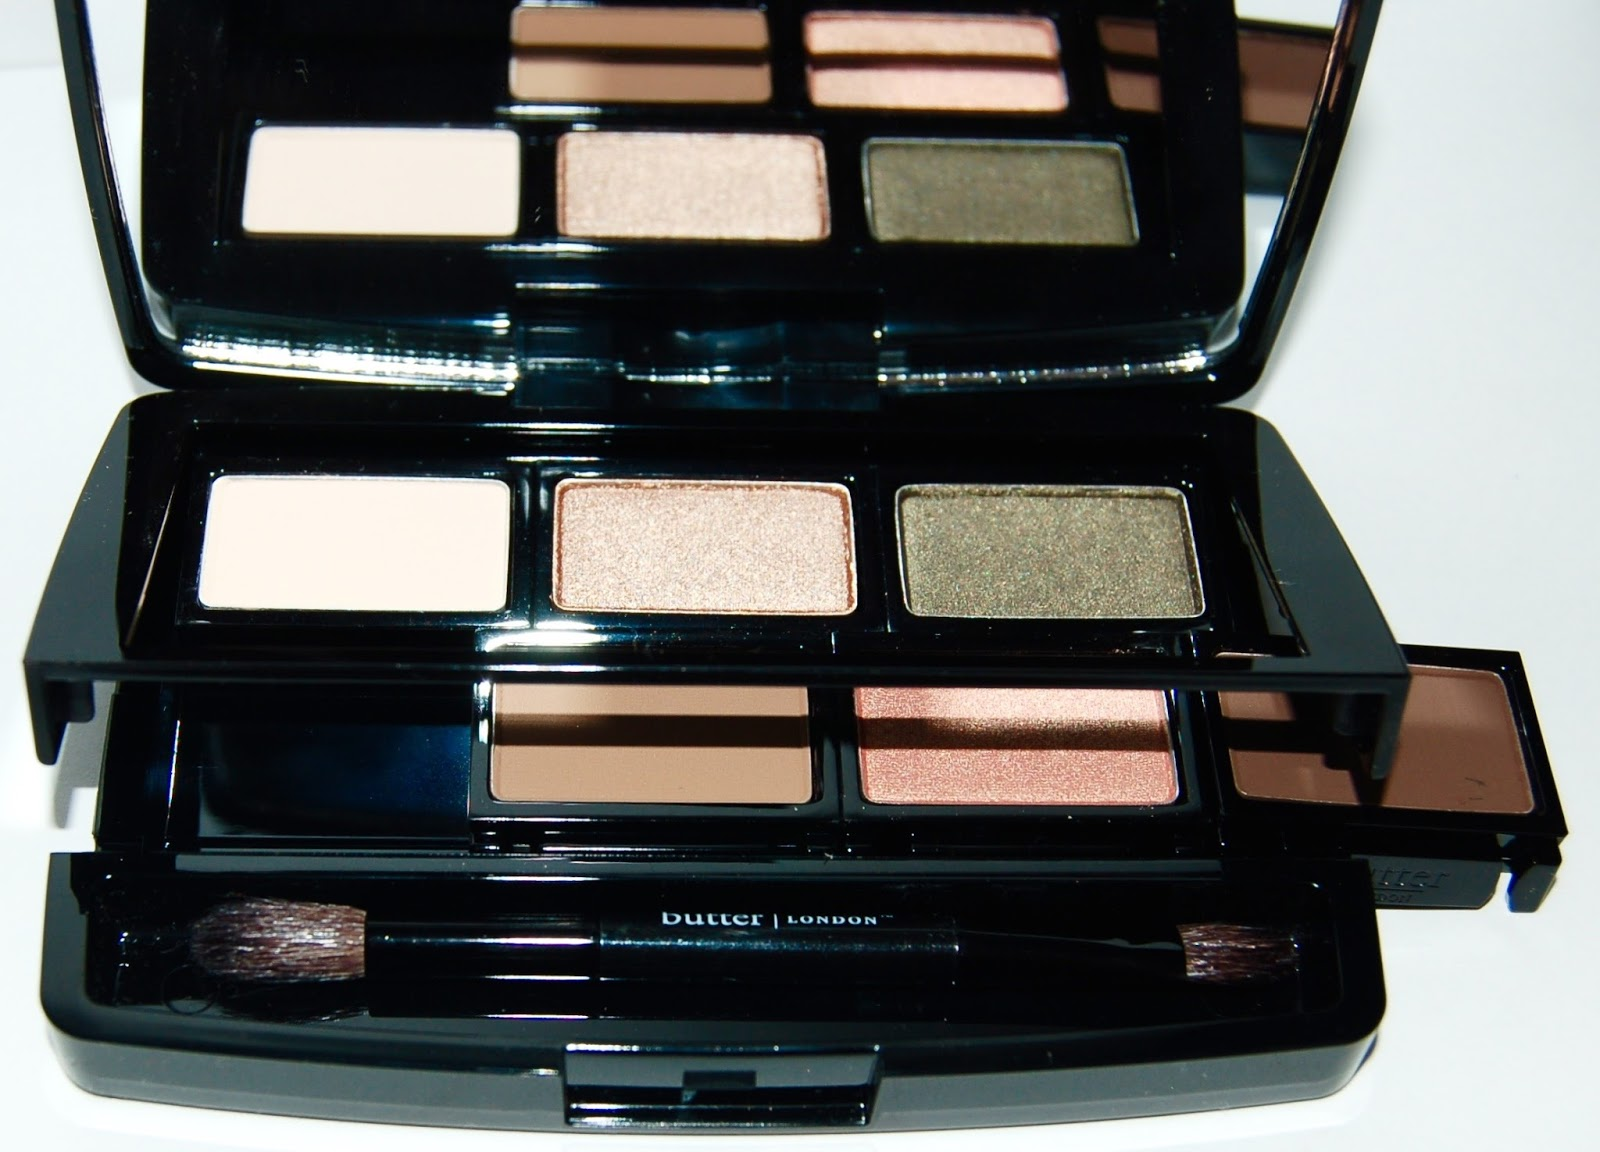 Butter London Shadow Clutch Palette